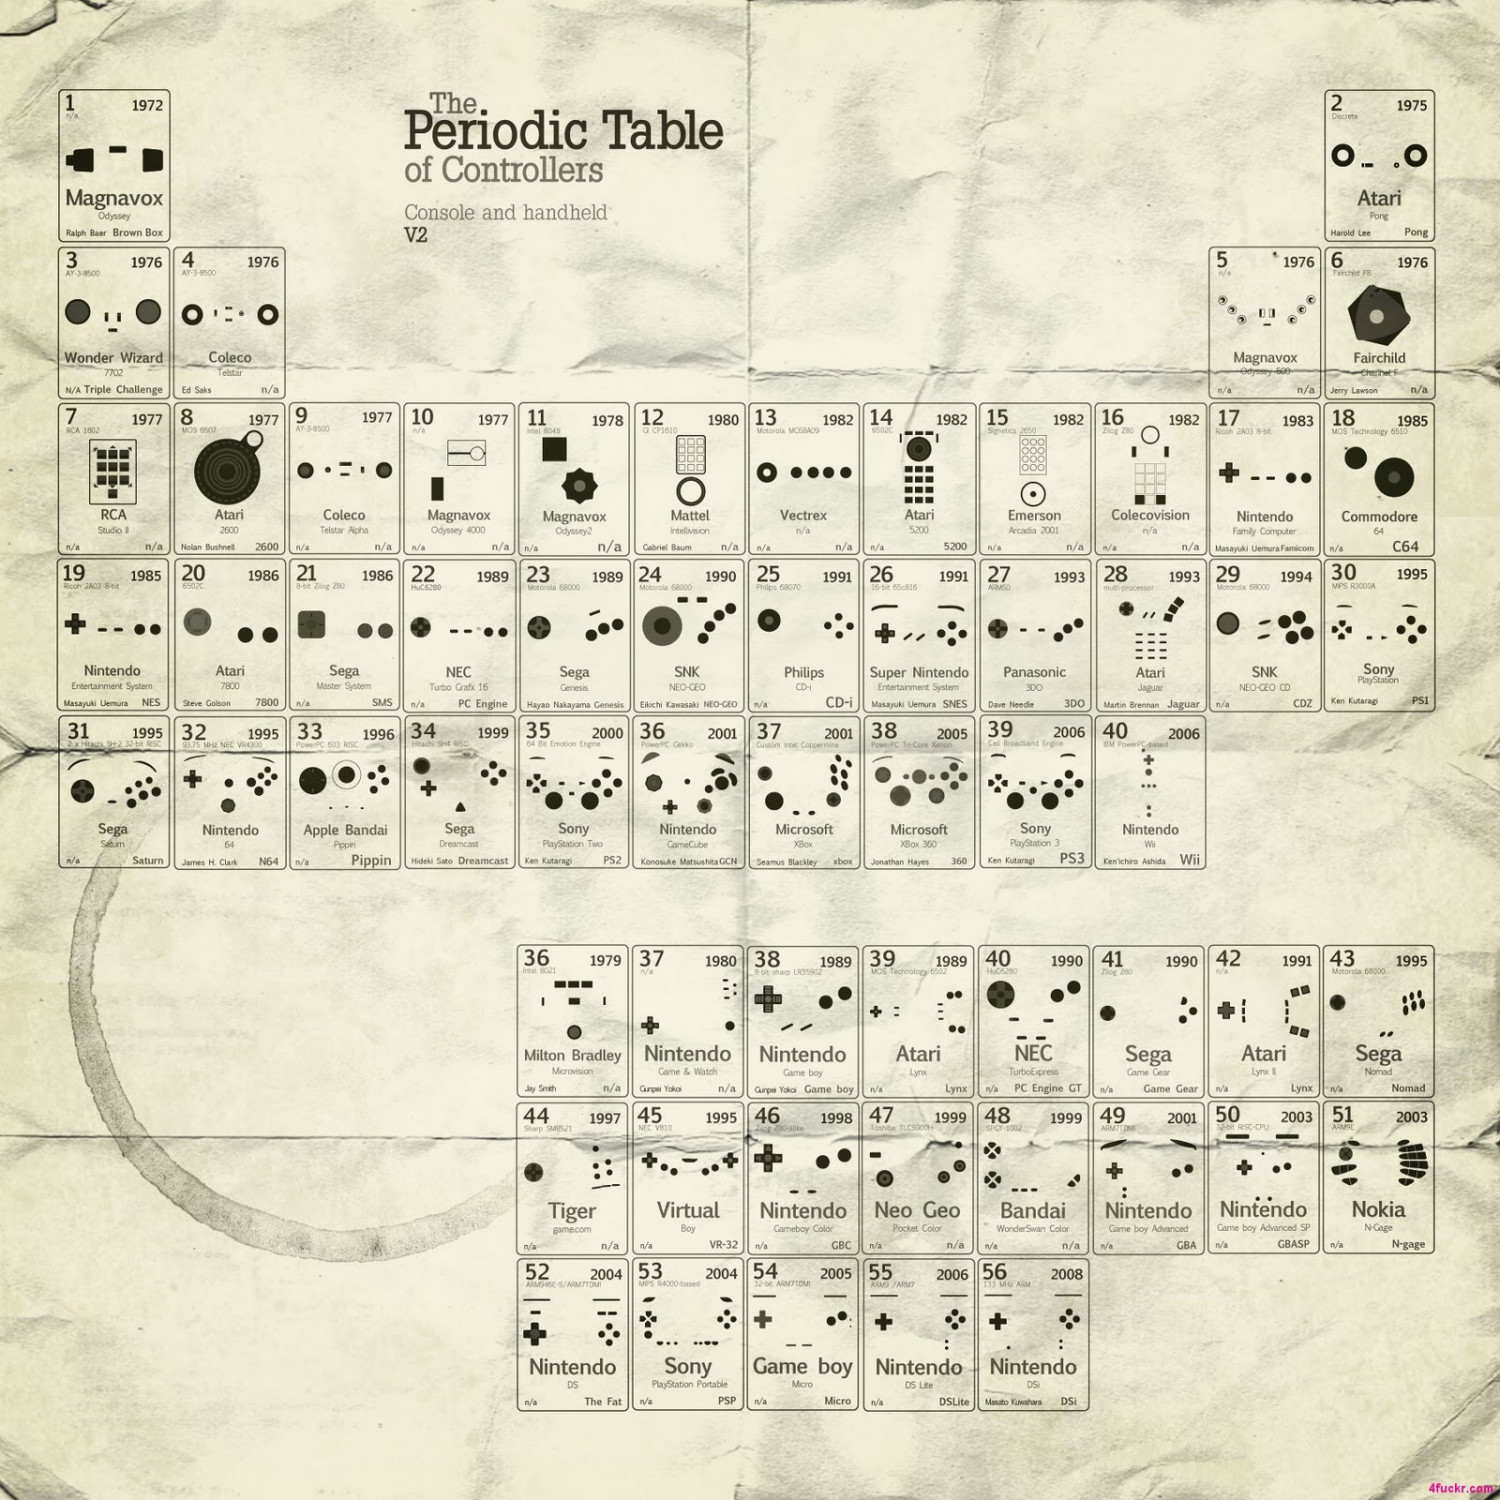 The Periodic Table of Controllers Infographic